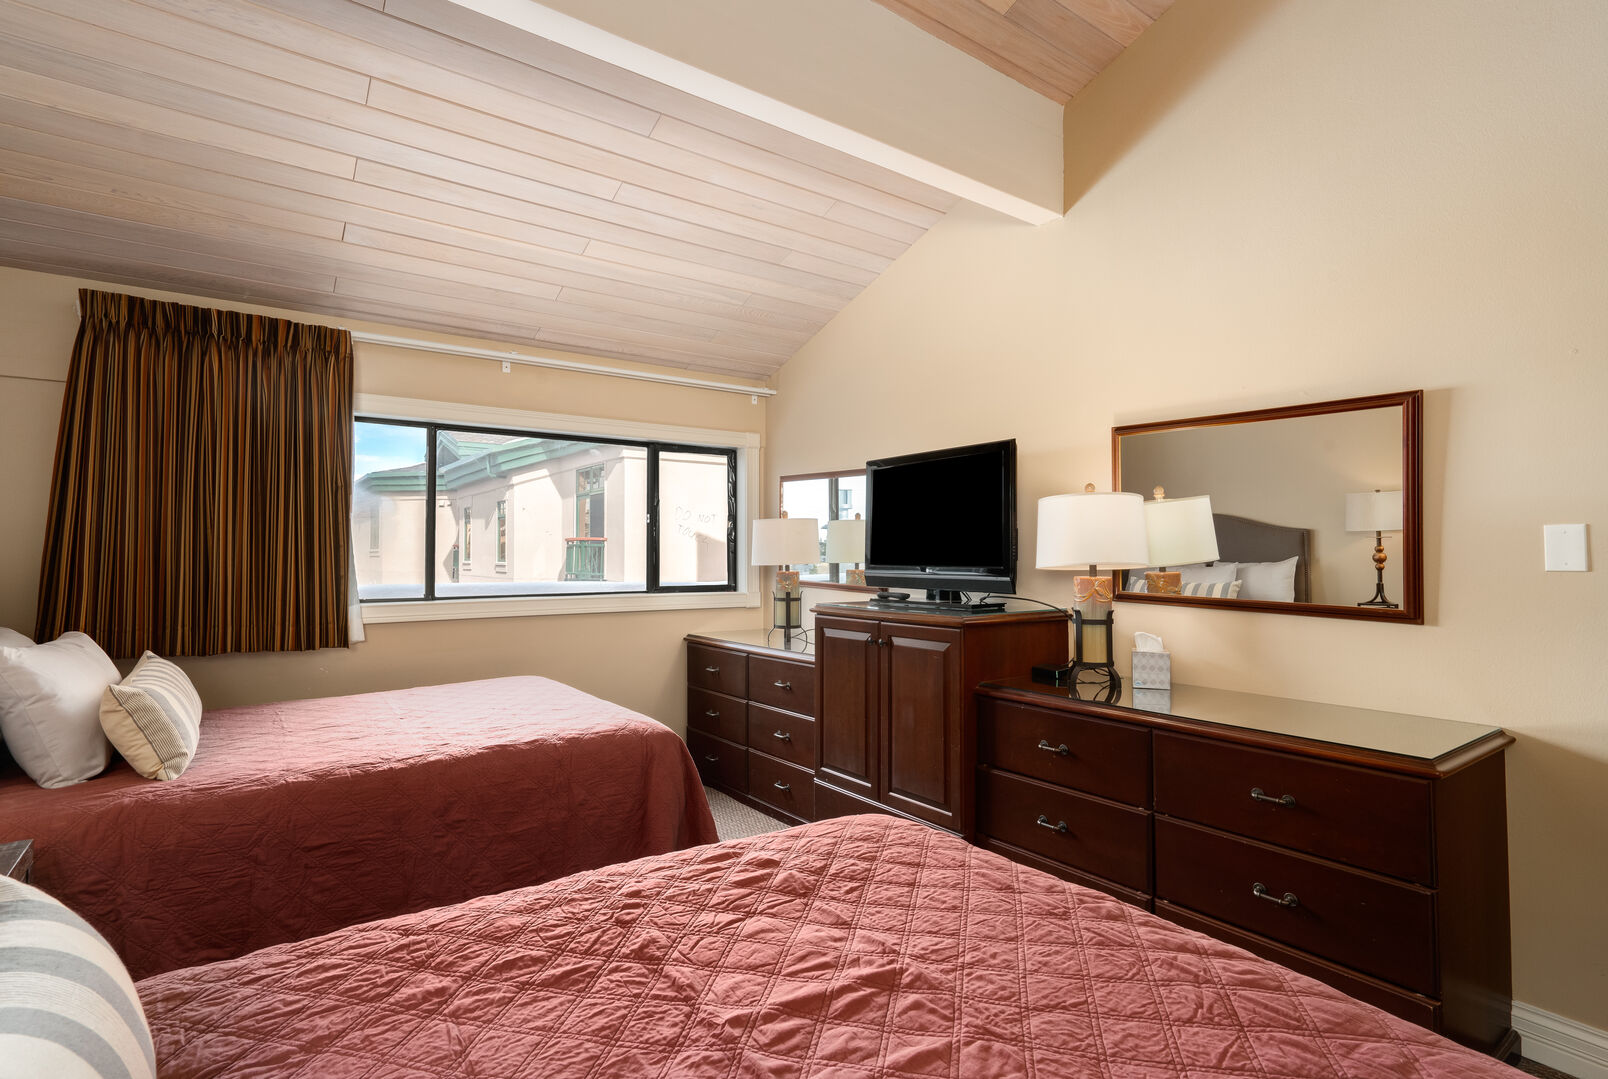 Large, airy bedroom with vaulted ceiling